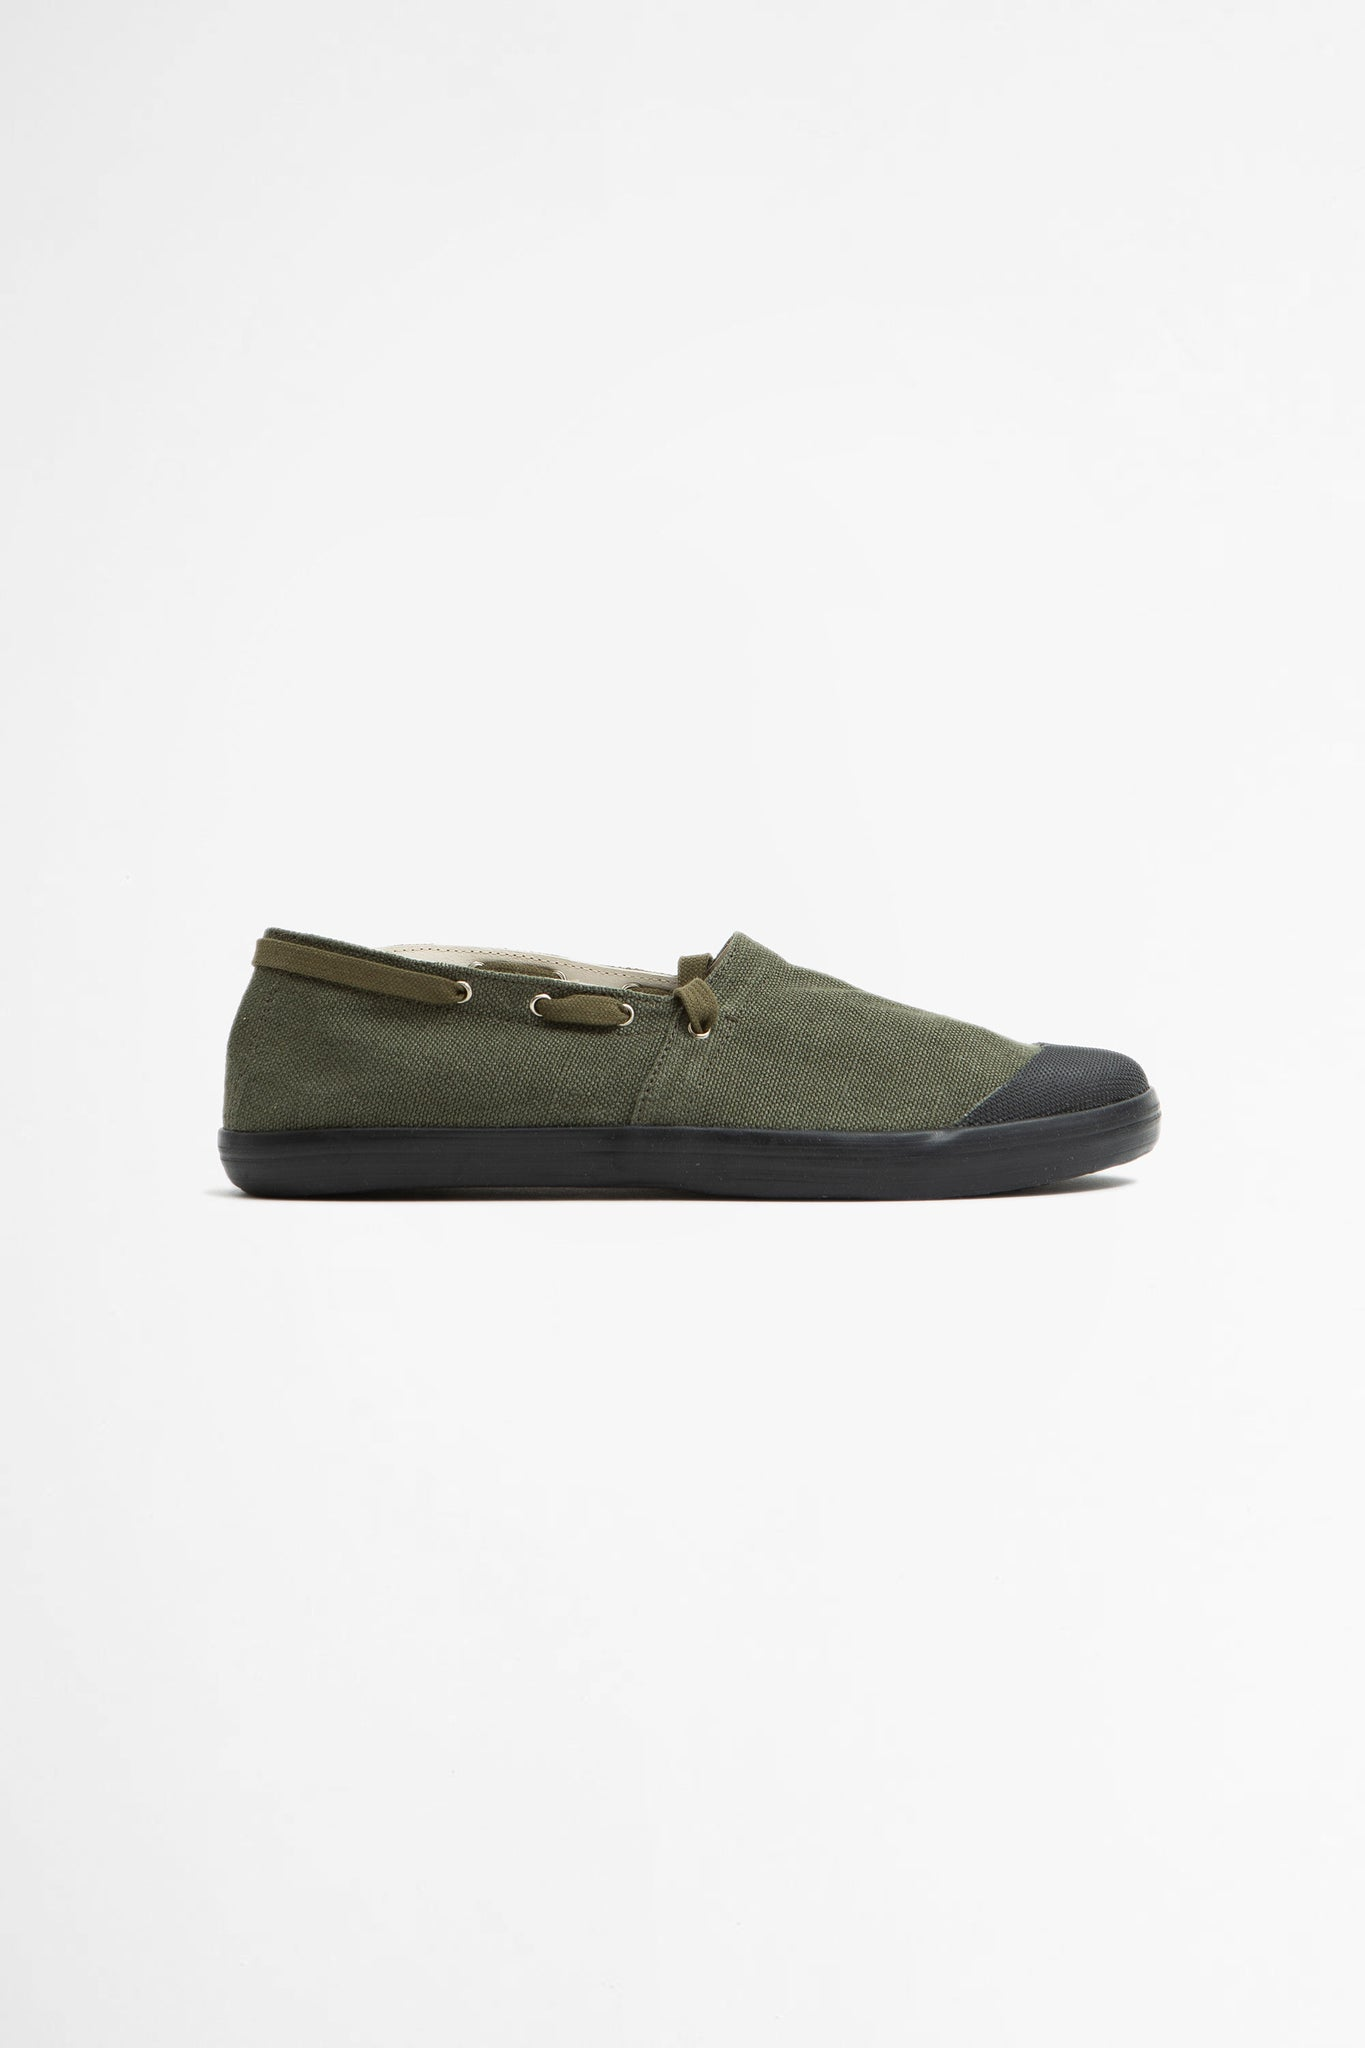 French military espadrilles olive/black sole